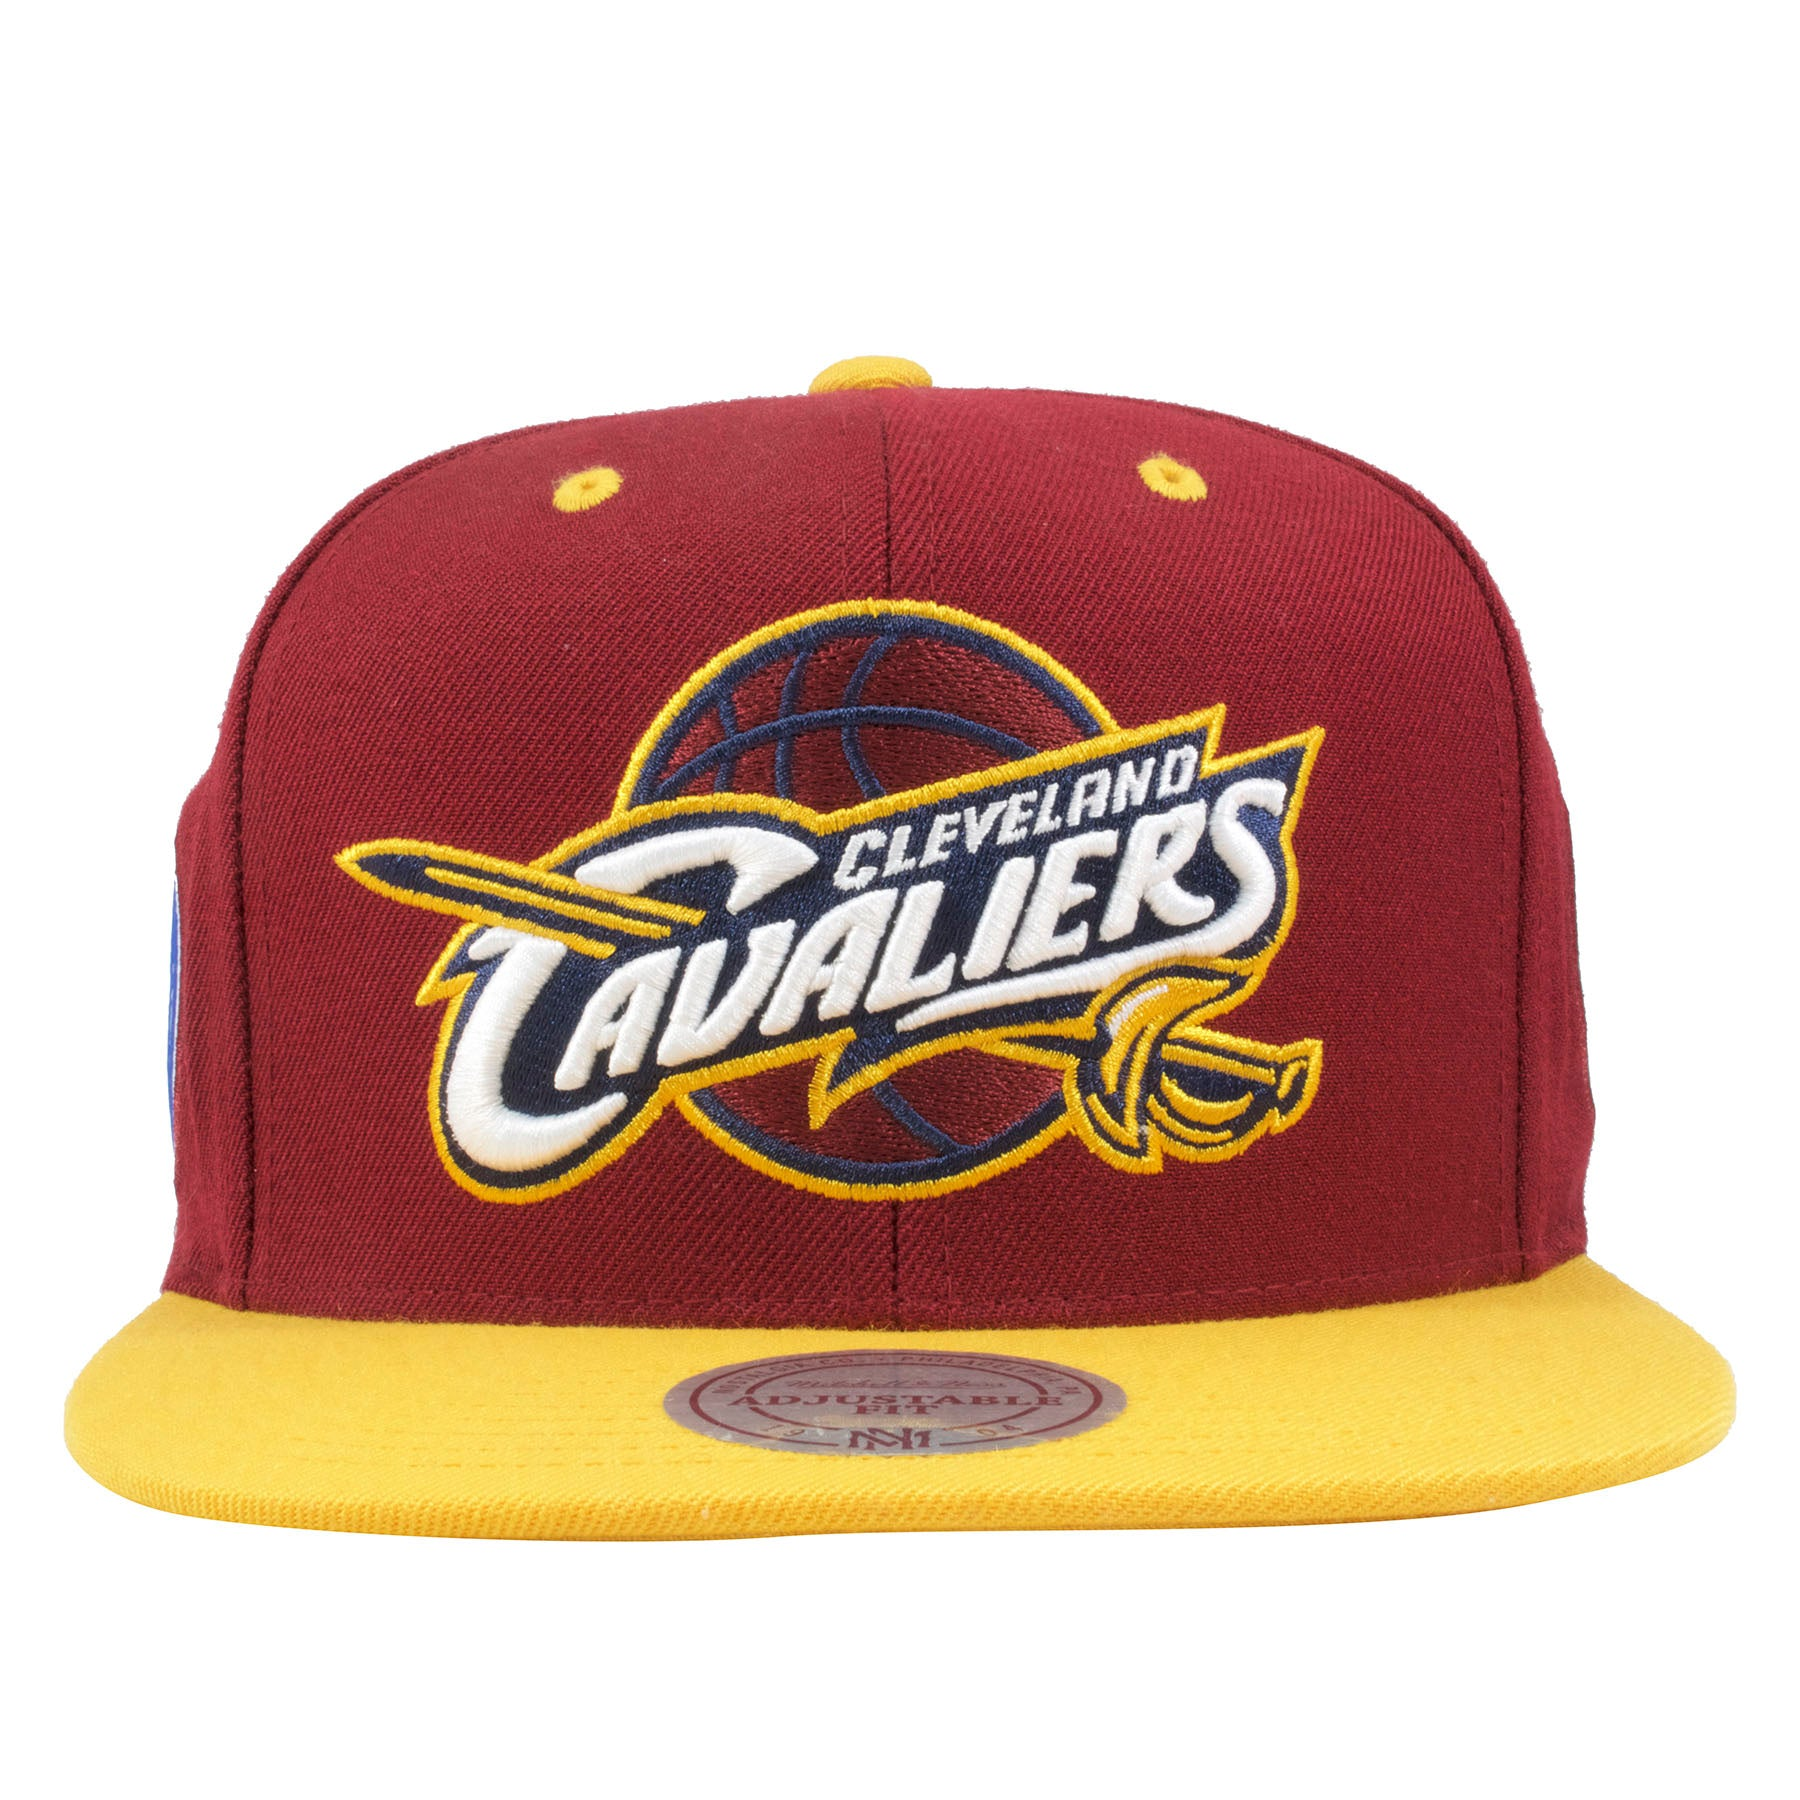 9acccc938b8 Cleveland Cavaliers 2016 All-Star Game Patch Snapback Hat – Cap Swag